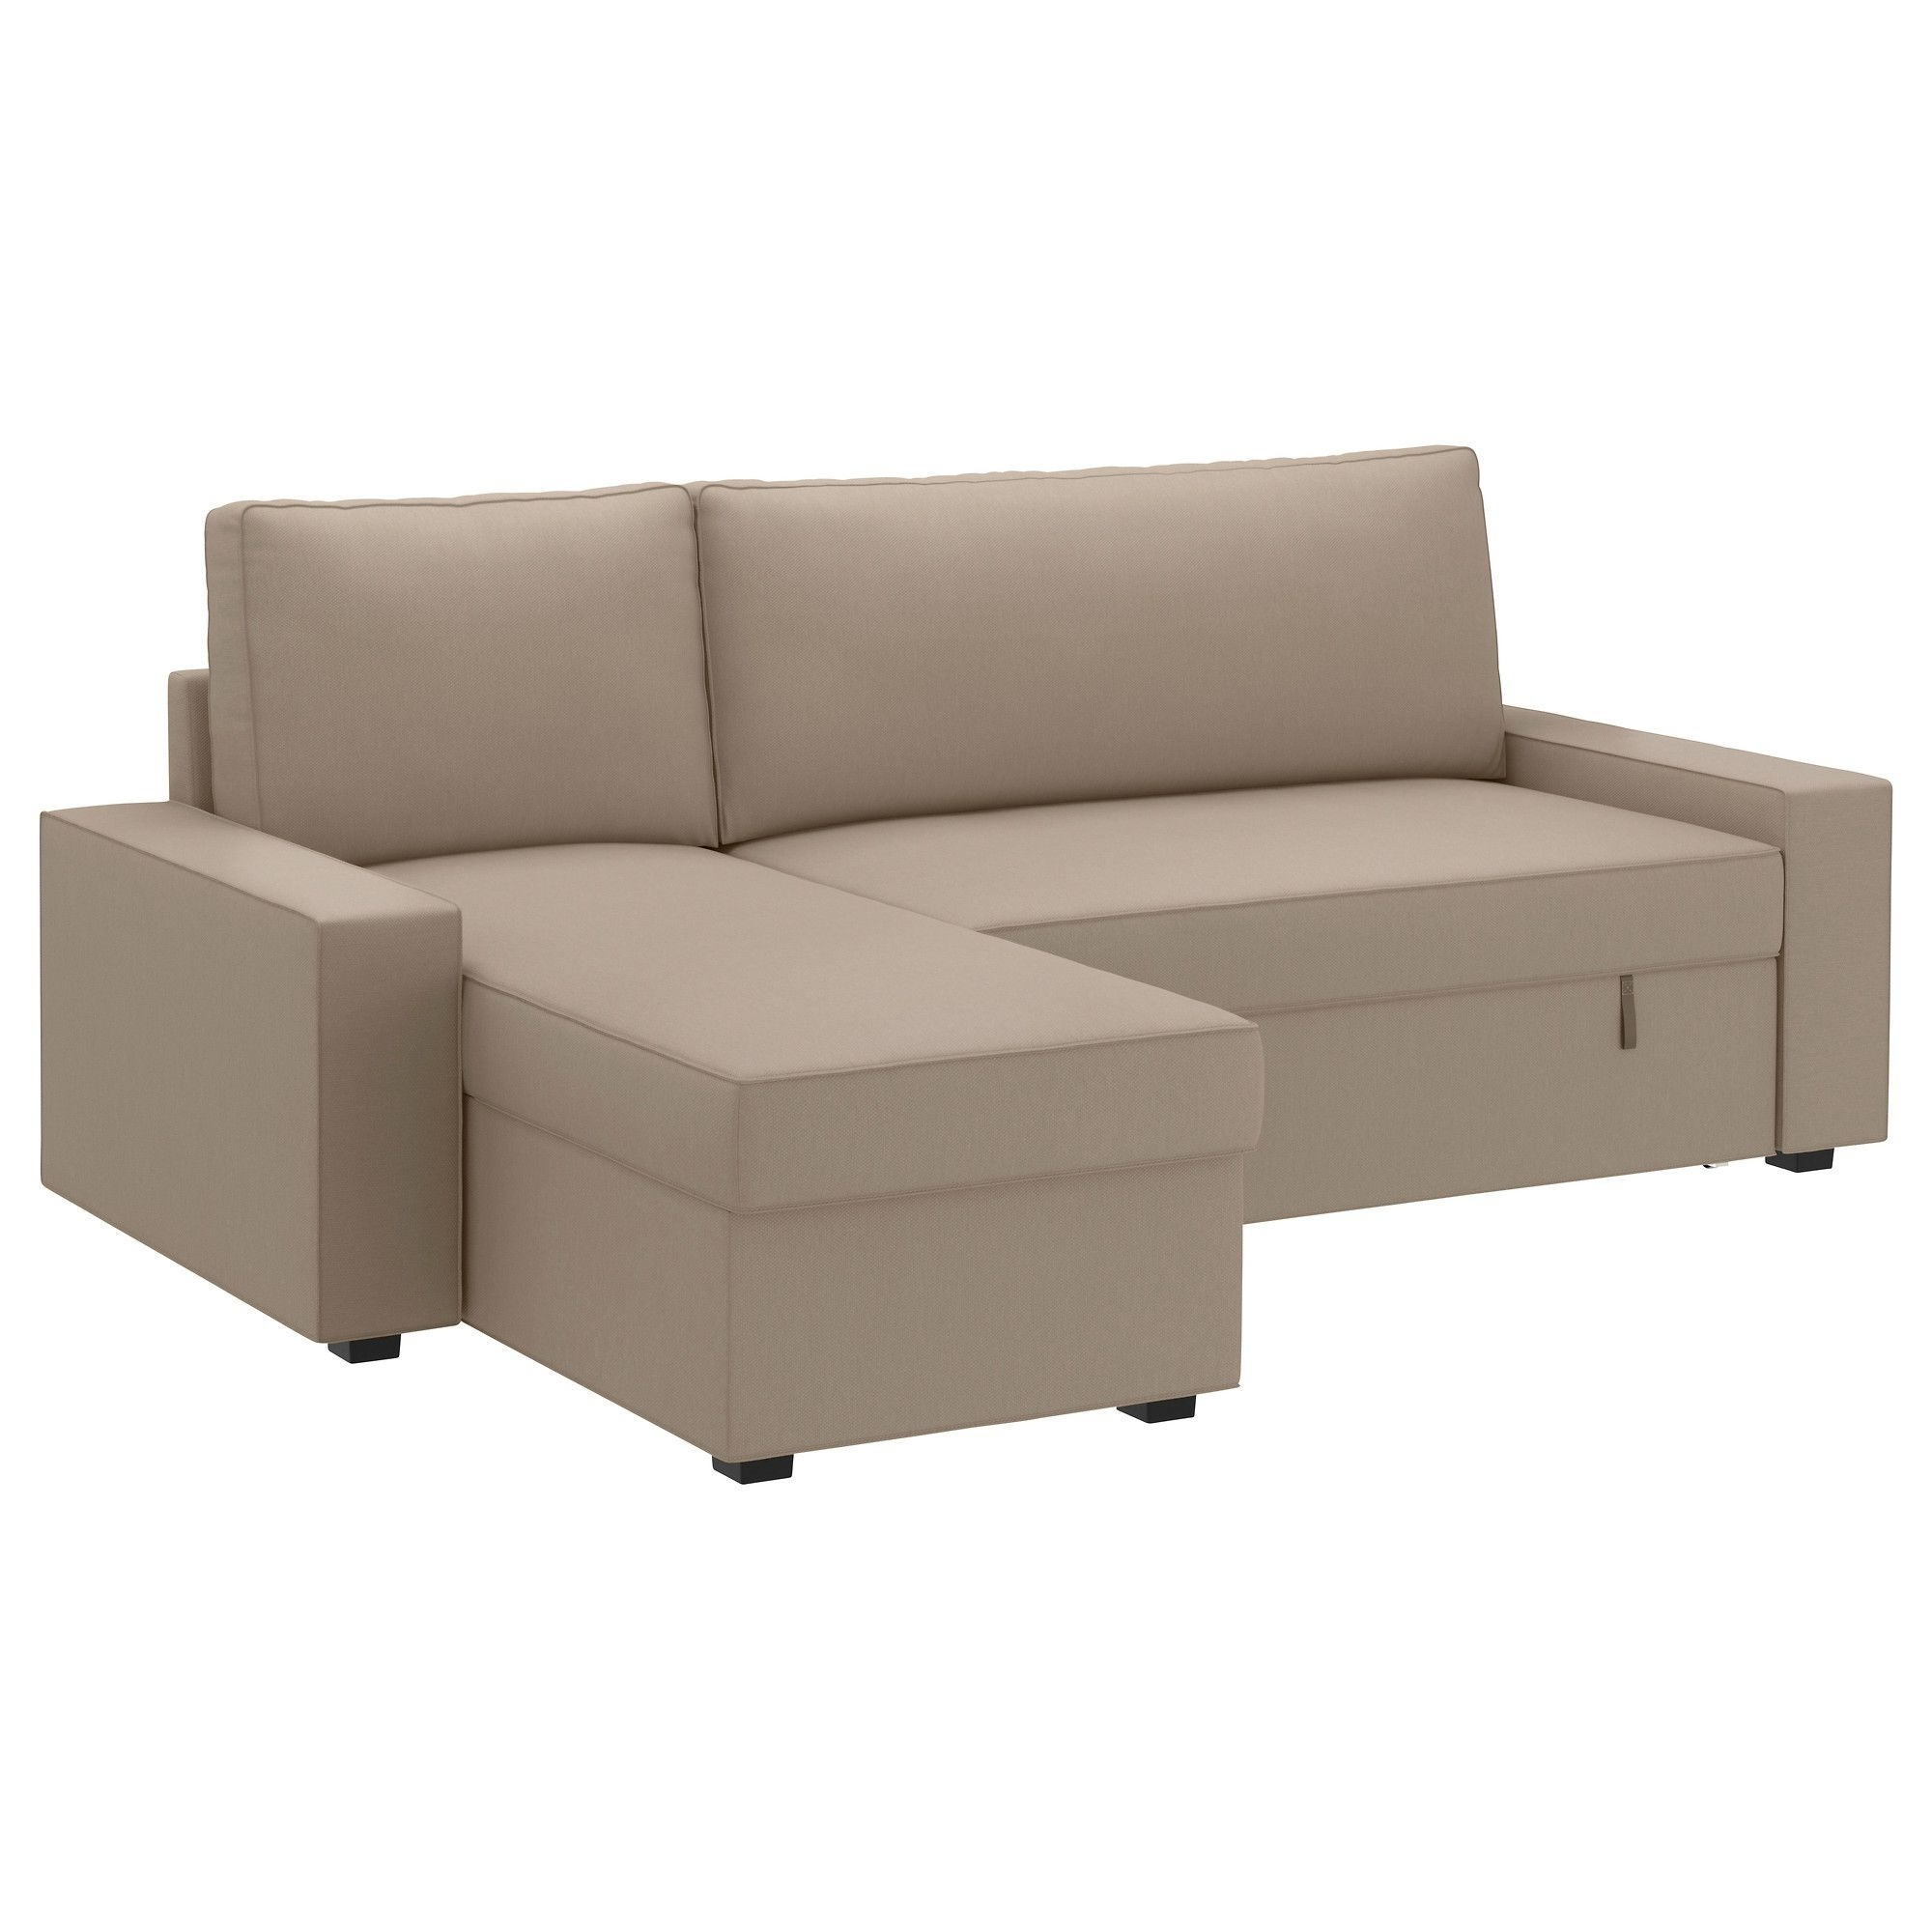 Sofa Beds With Chaise In Popular Vilasund Covered Sofa Bed With Chaise – Dansbo Beige – Ikea (View 4 of 15)